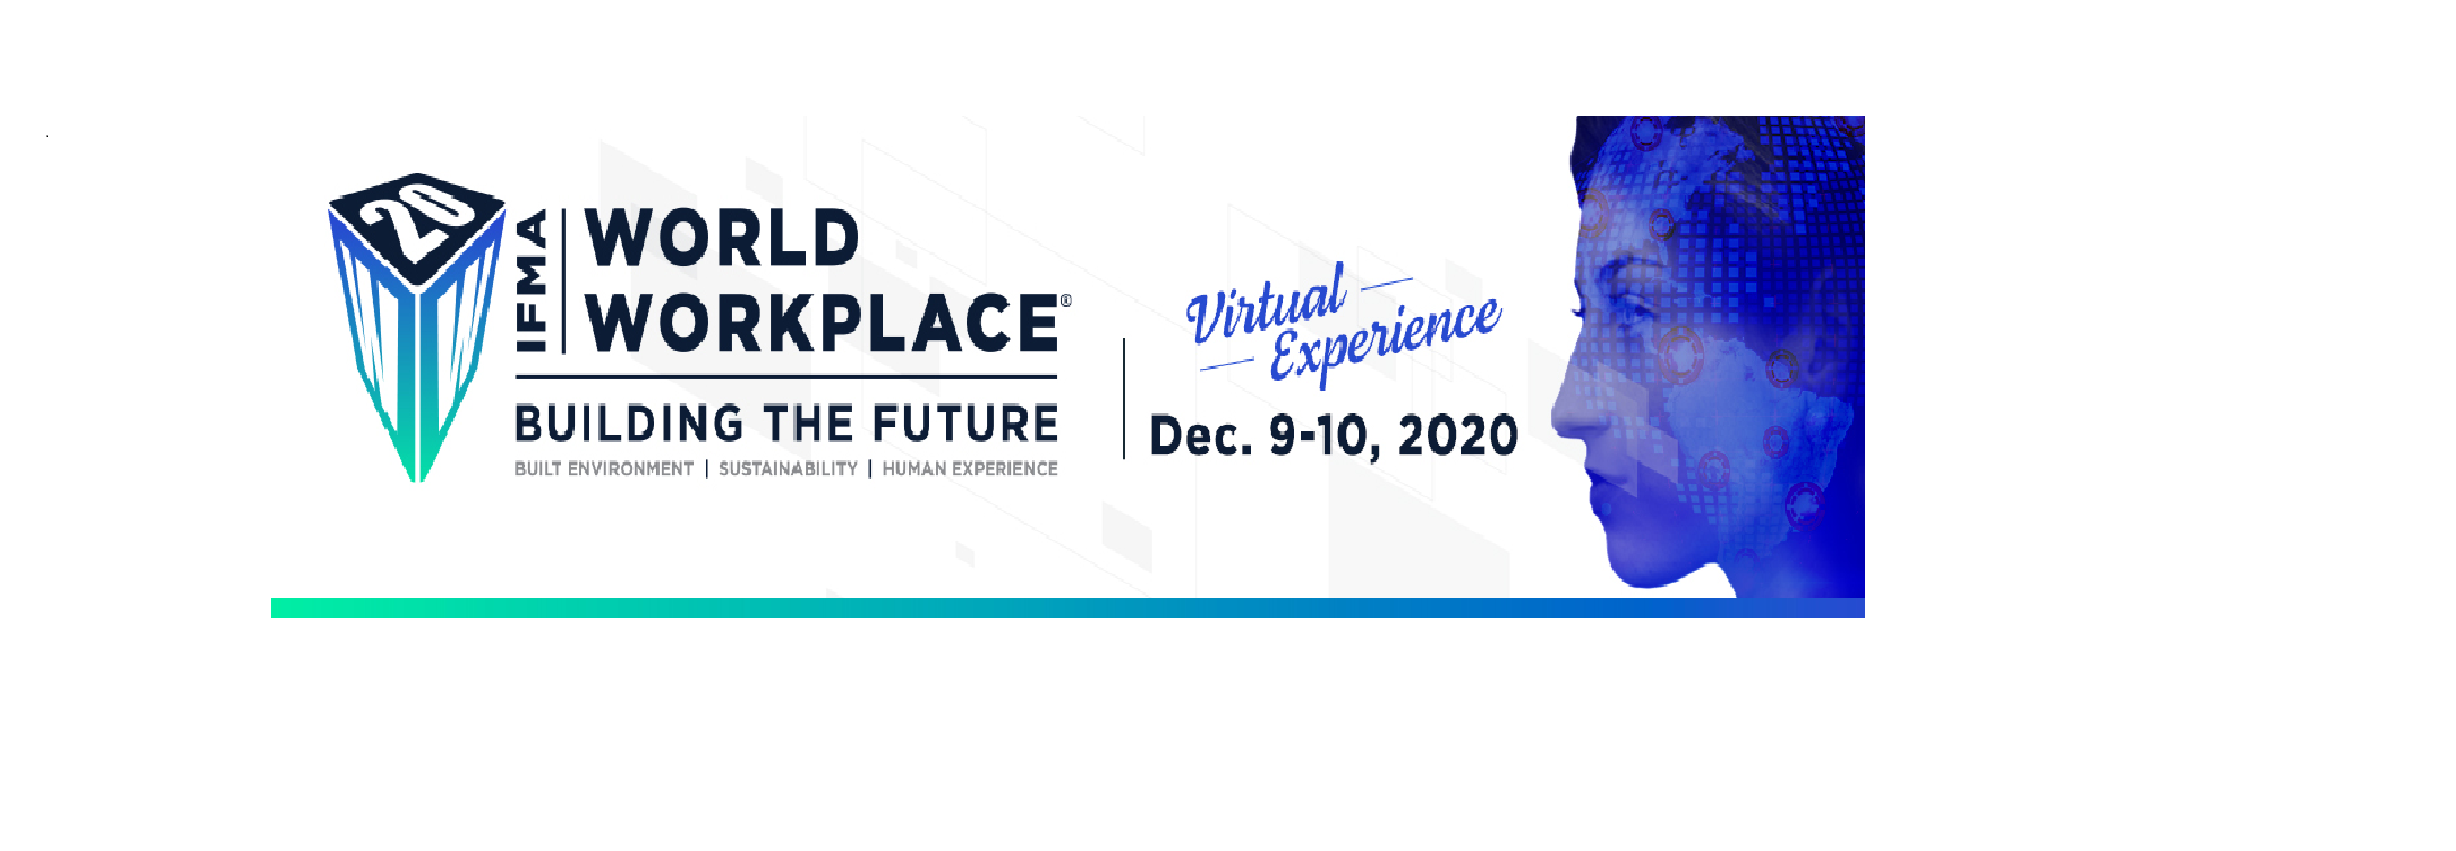 IFMA's World Workplace 2020 Conference and Expo will be delivered as a virtual event this Dec. 9-10!